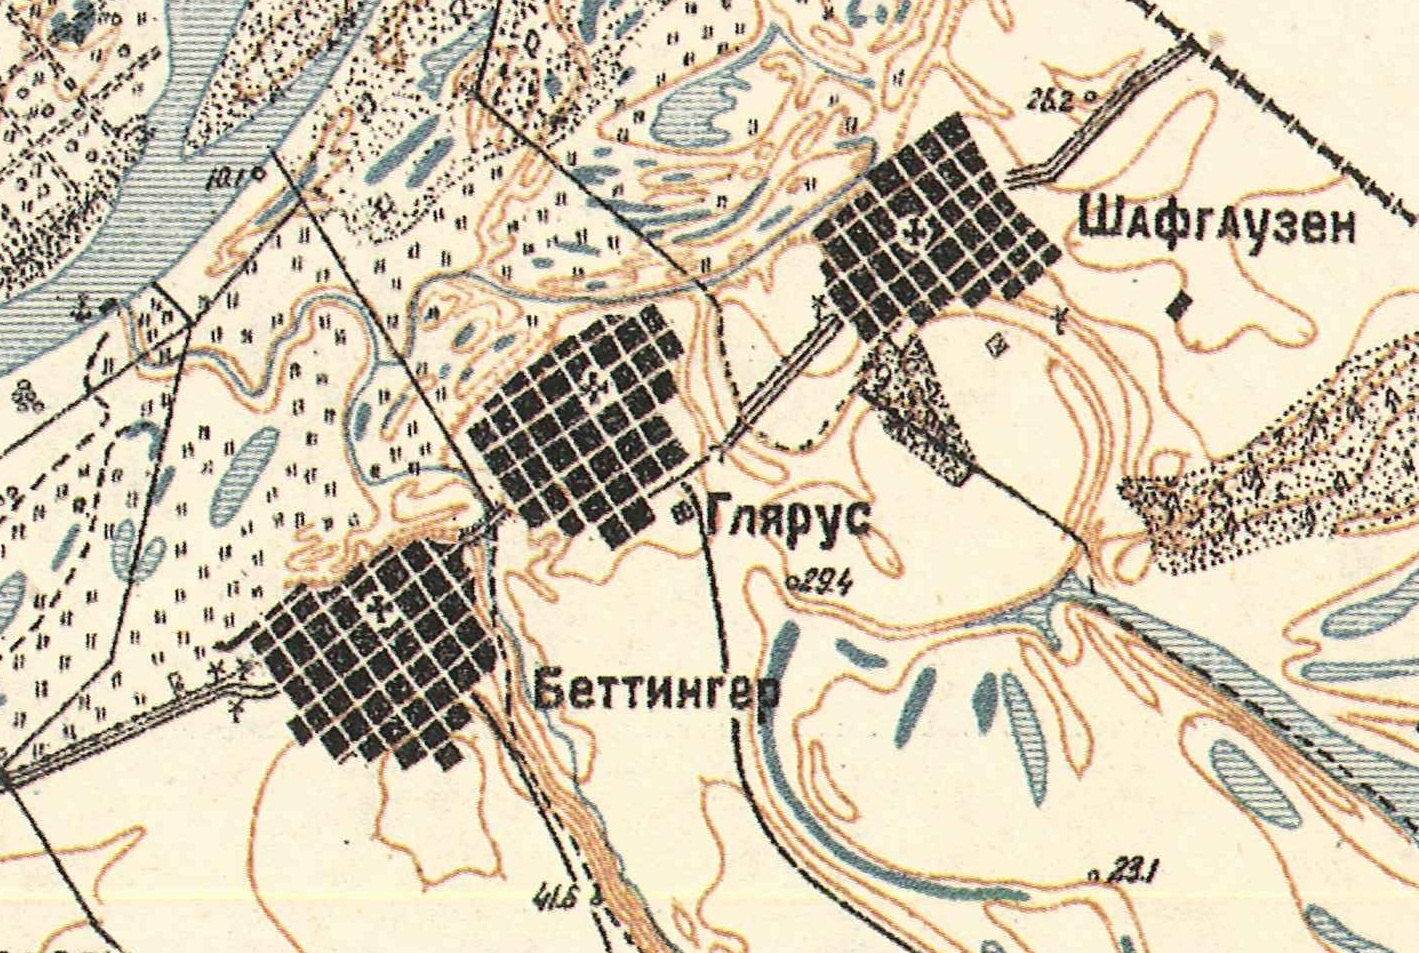 Map showing Biberstein in the center (1935).